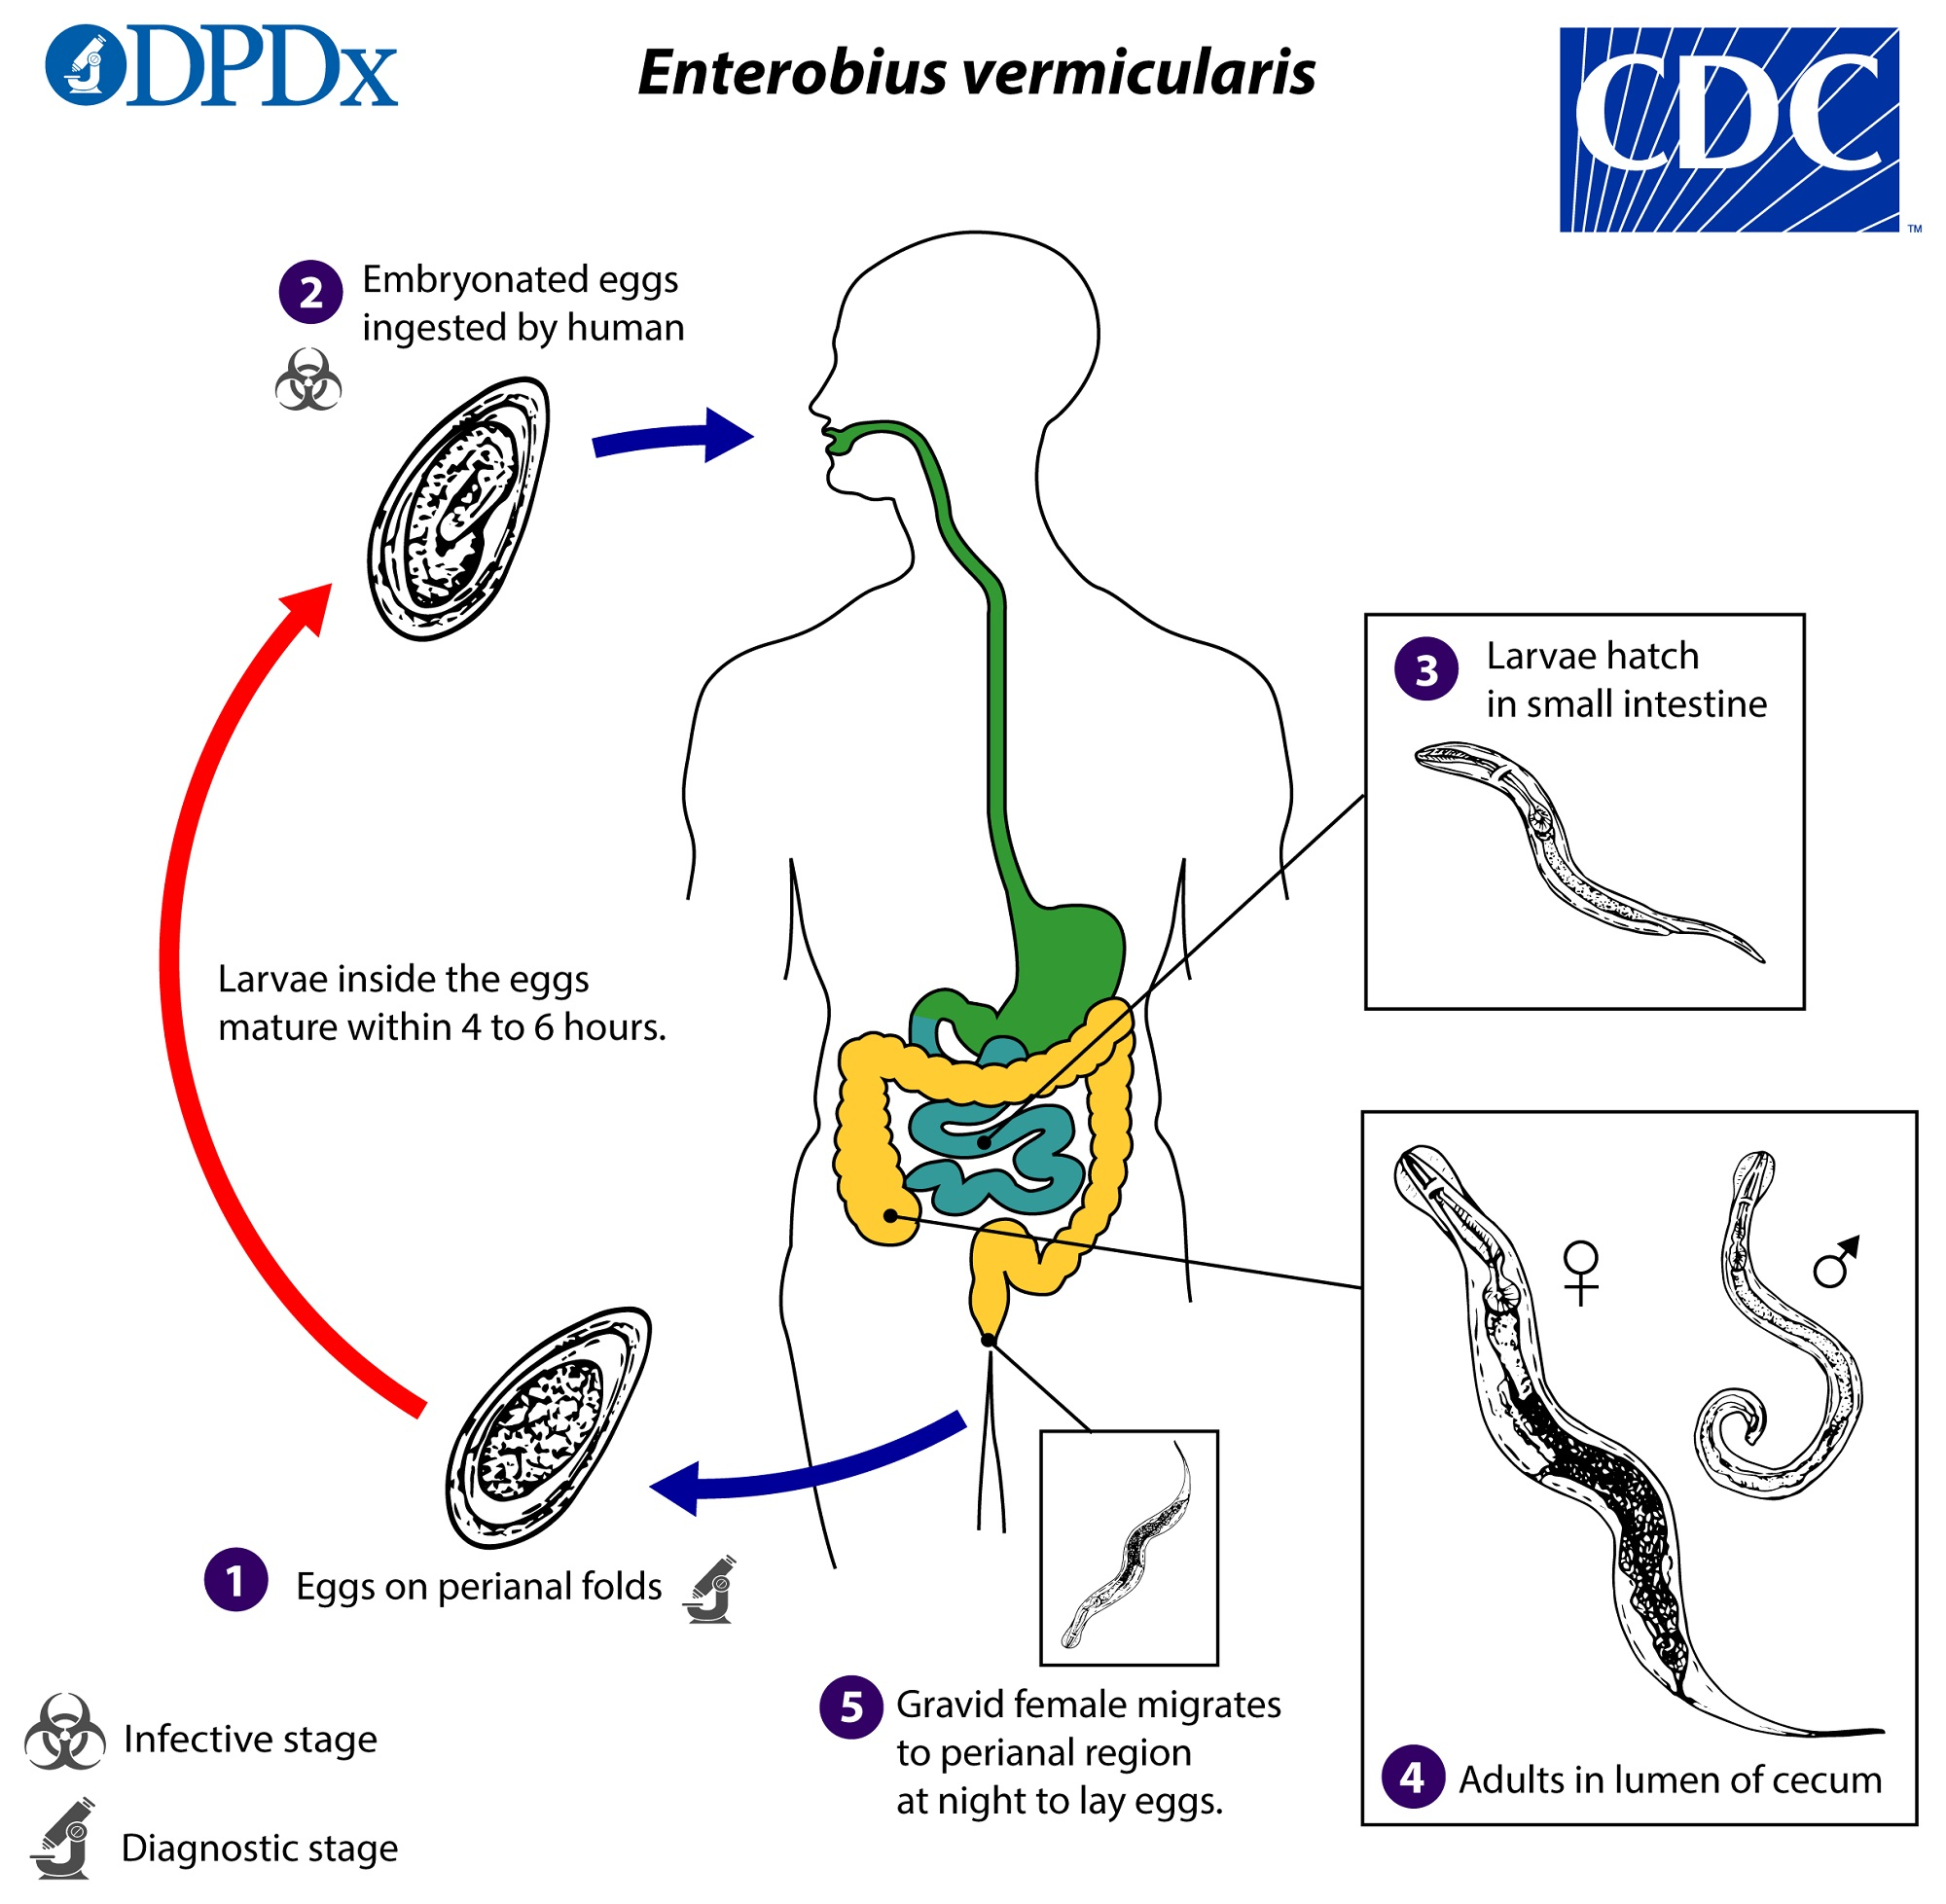 autoinfection in enterobiasis